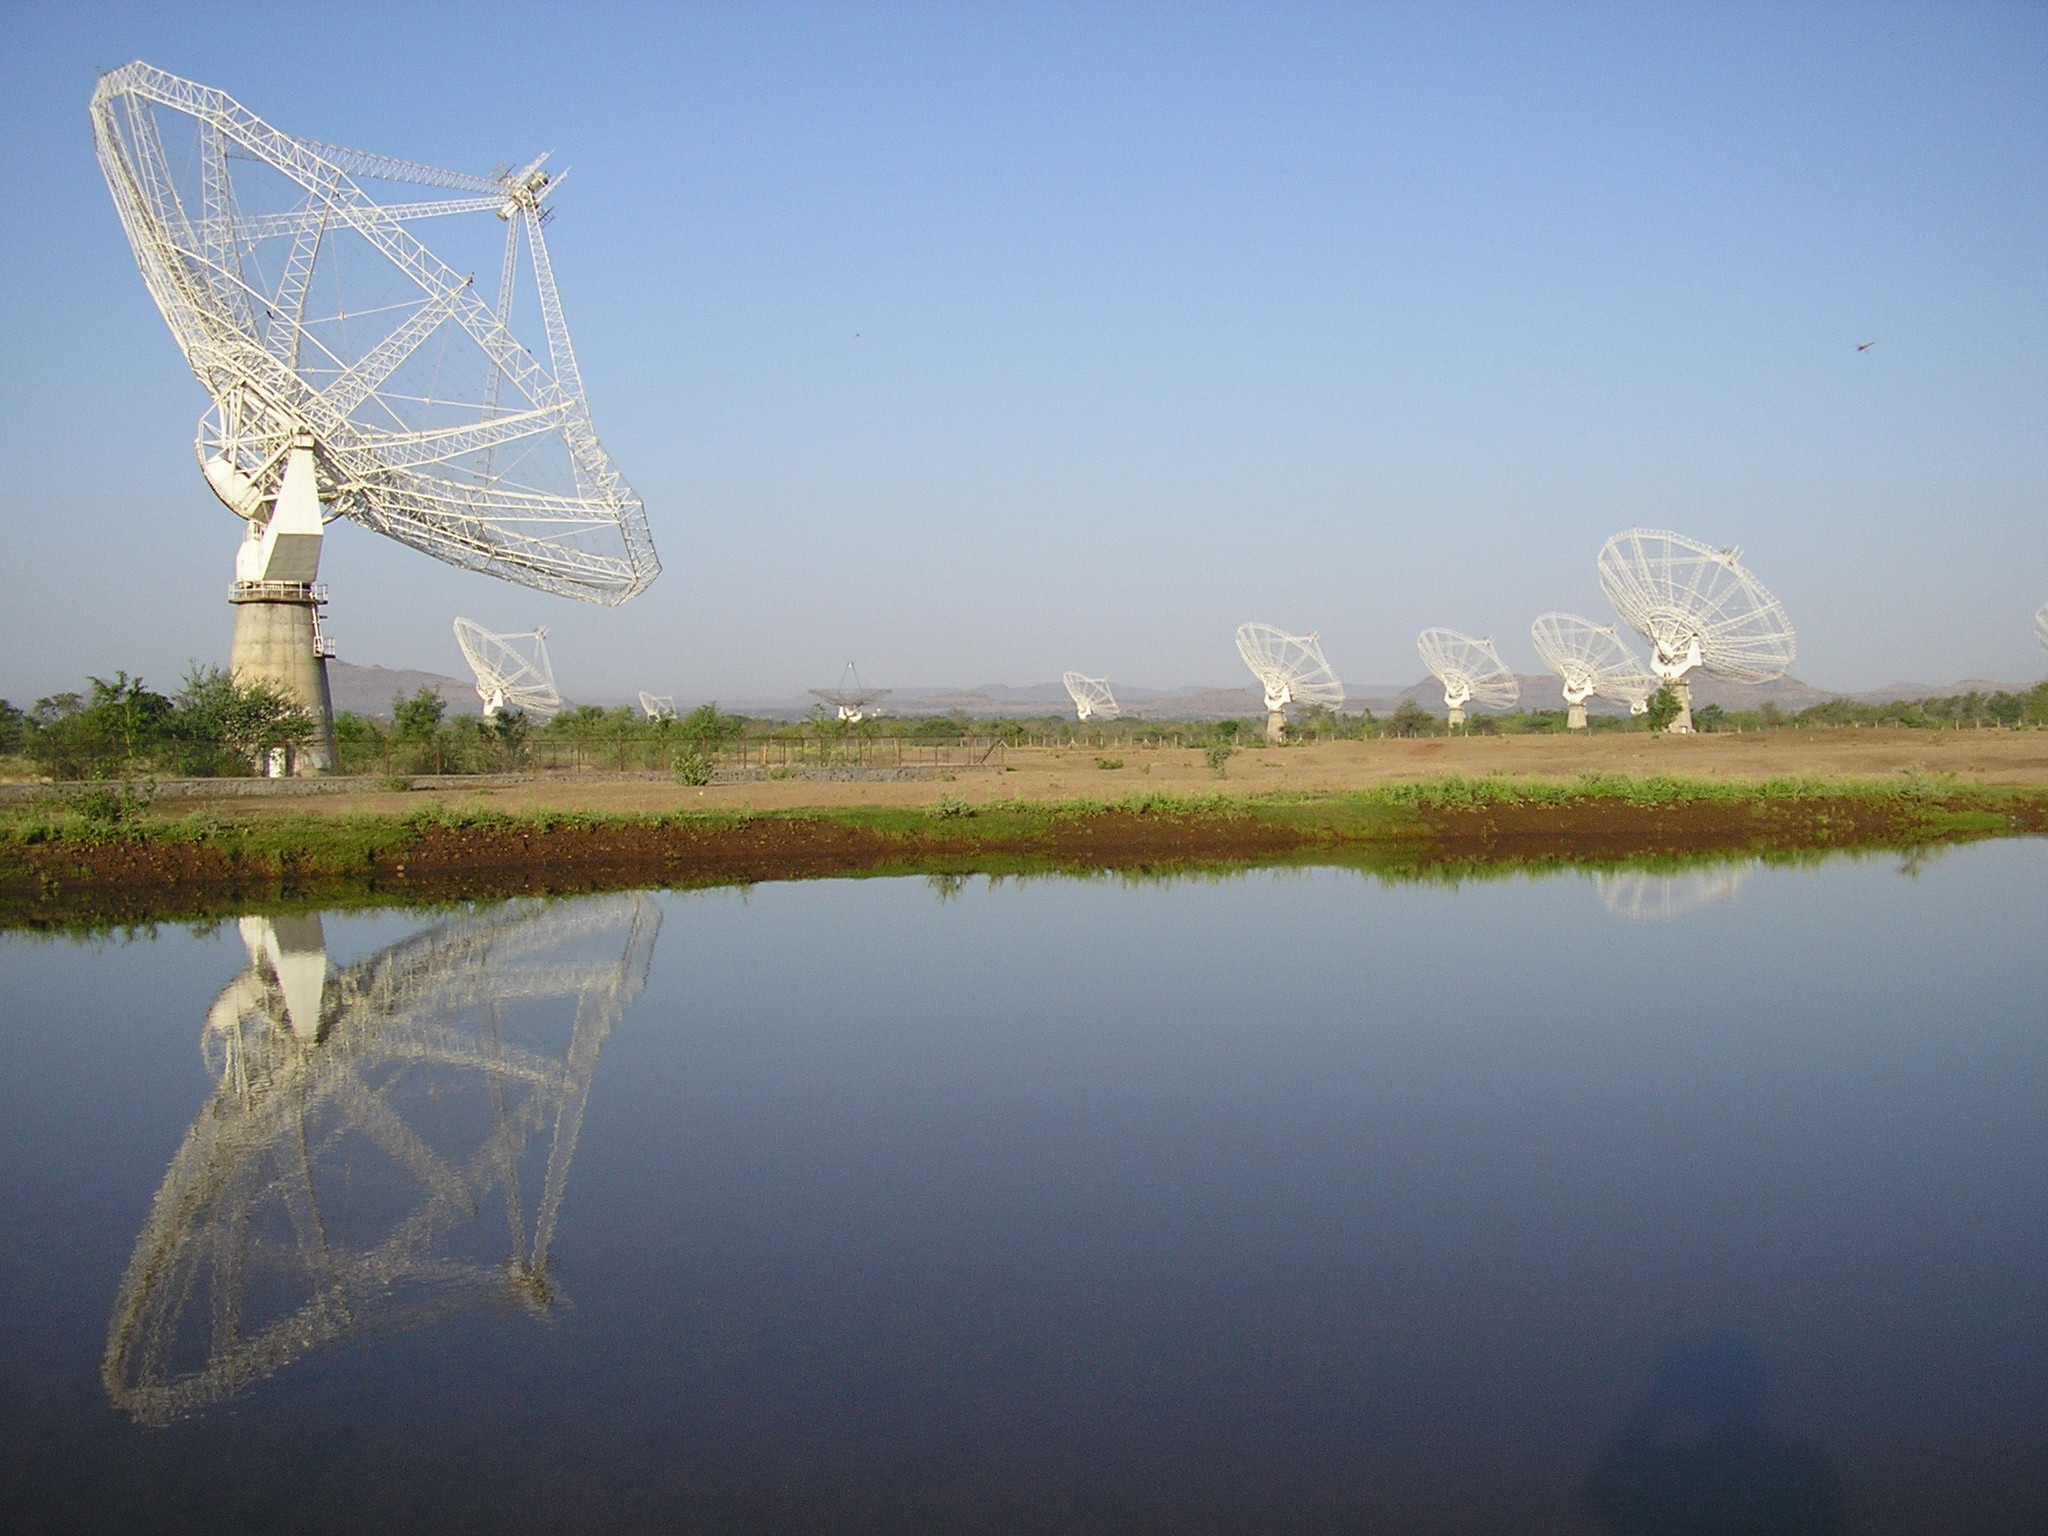 The Giant Metrewave Radio Telescope for radio astronomical research at metre wavelengths. GMRT is a very versatile instrument for investigating a variety of radio astrophysical problems ranging from nearby Solar system to the edge of observable Universe. Credit: National Centre for Radio Astrophysics - Tata Institute of Fundamental Research